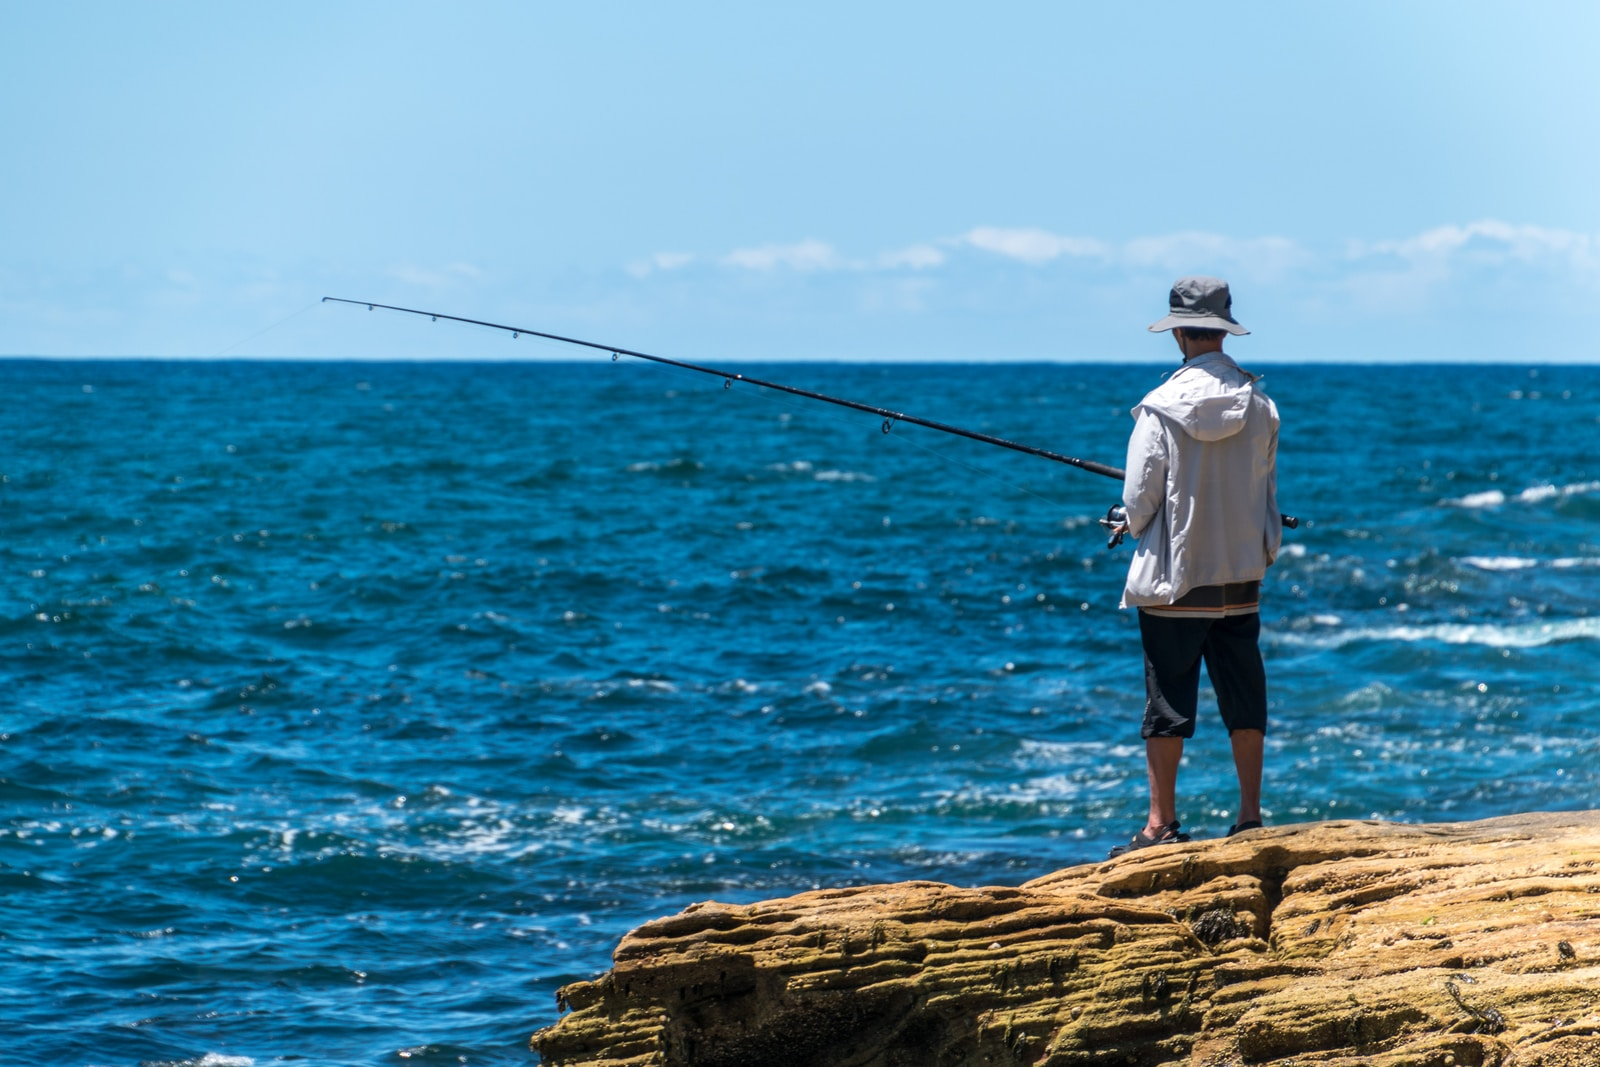 man in white shirt and black shorts fishing on sea during daytime